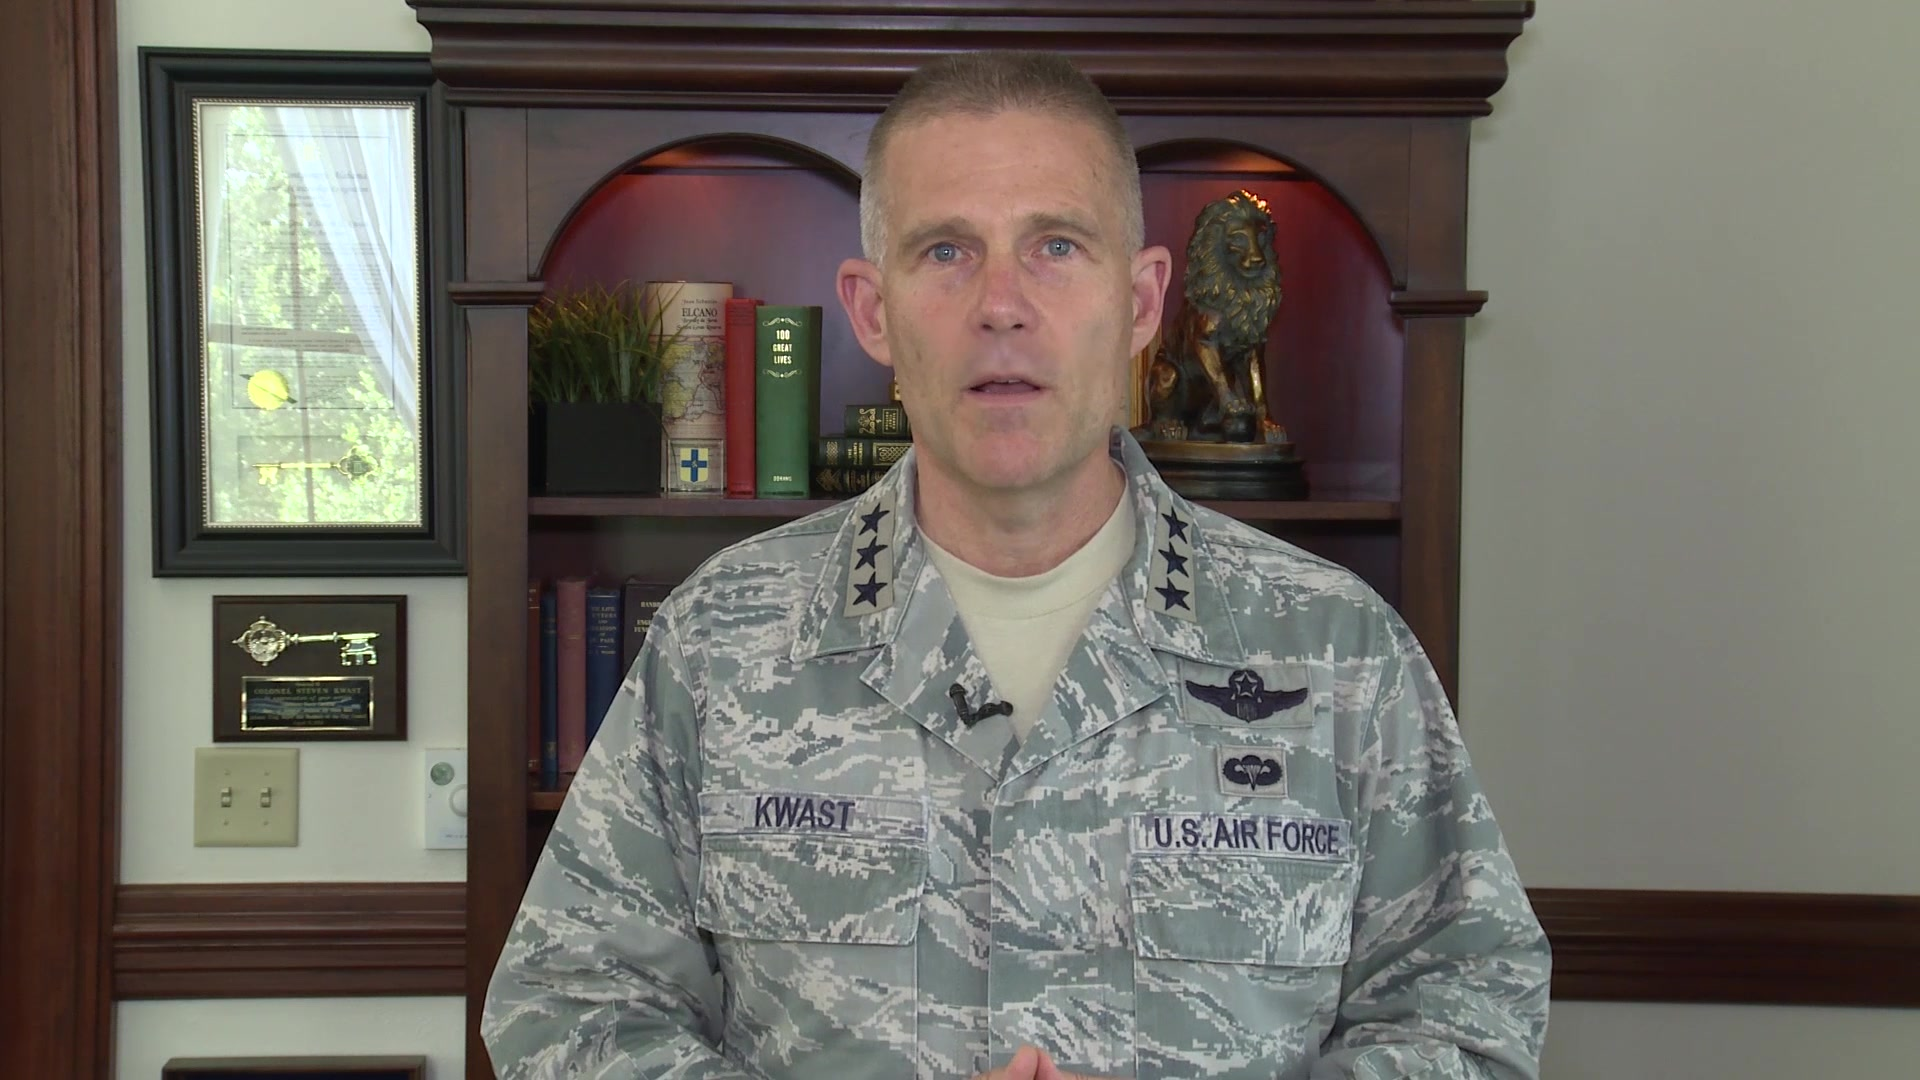 """""""Coaching is one of the key elements of learning in life. The better coach that you are, the better leader you are and the better learner you become.""""  Check out the latest Commander's Intent video from Lt. Gen. Steve Kwast where he urges First Command Airmen to coach one another on their individual plans for the future."""